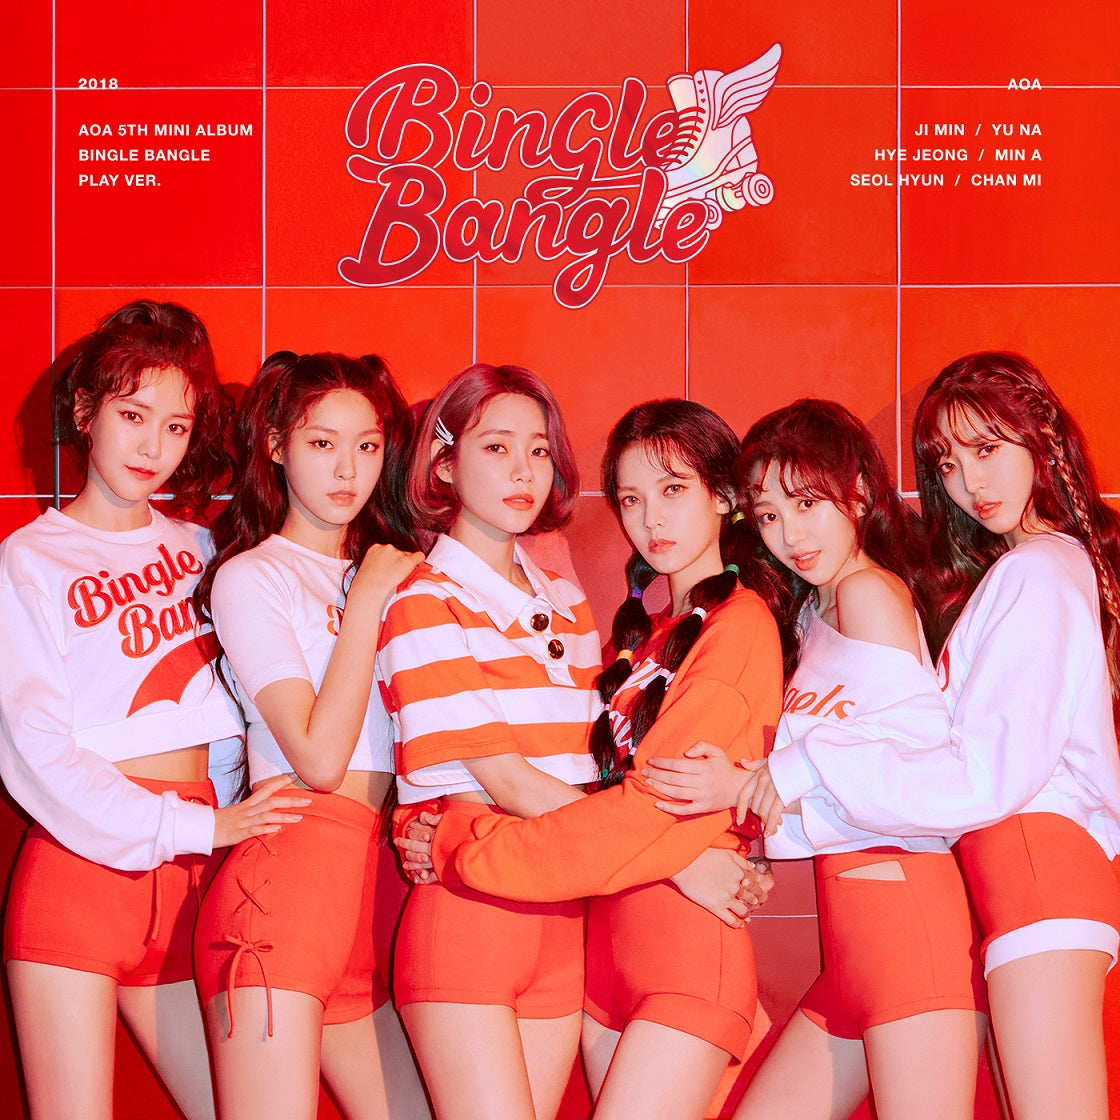 AOA 5TH MINI ALBUM 'BINGLE BANGLE'